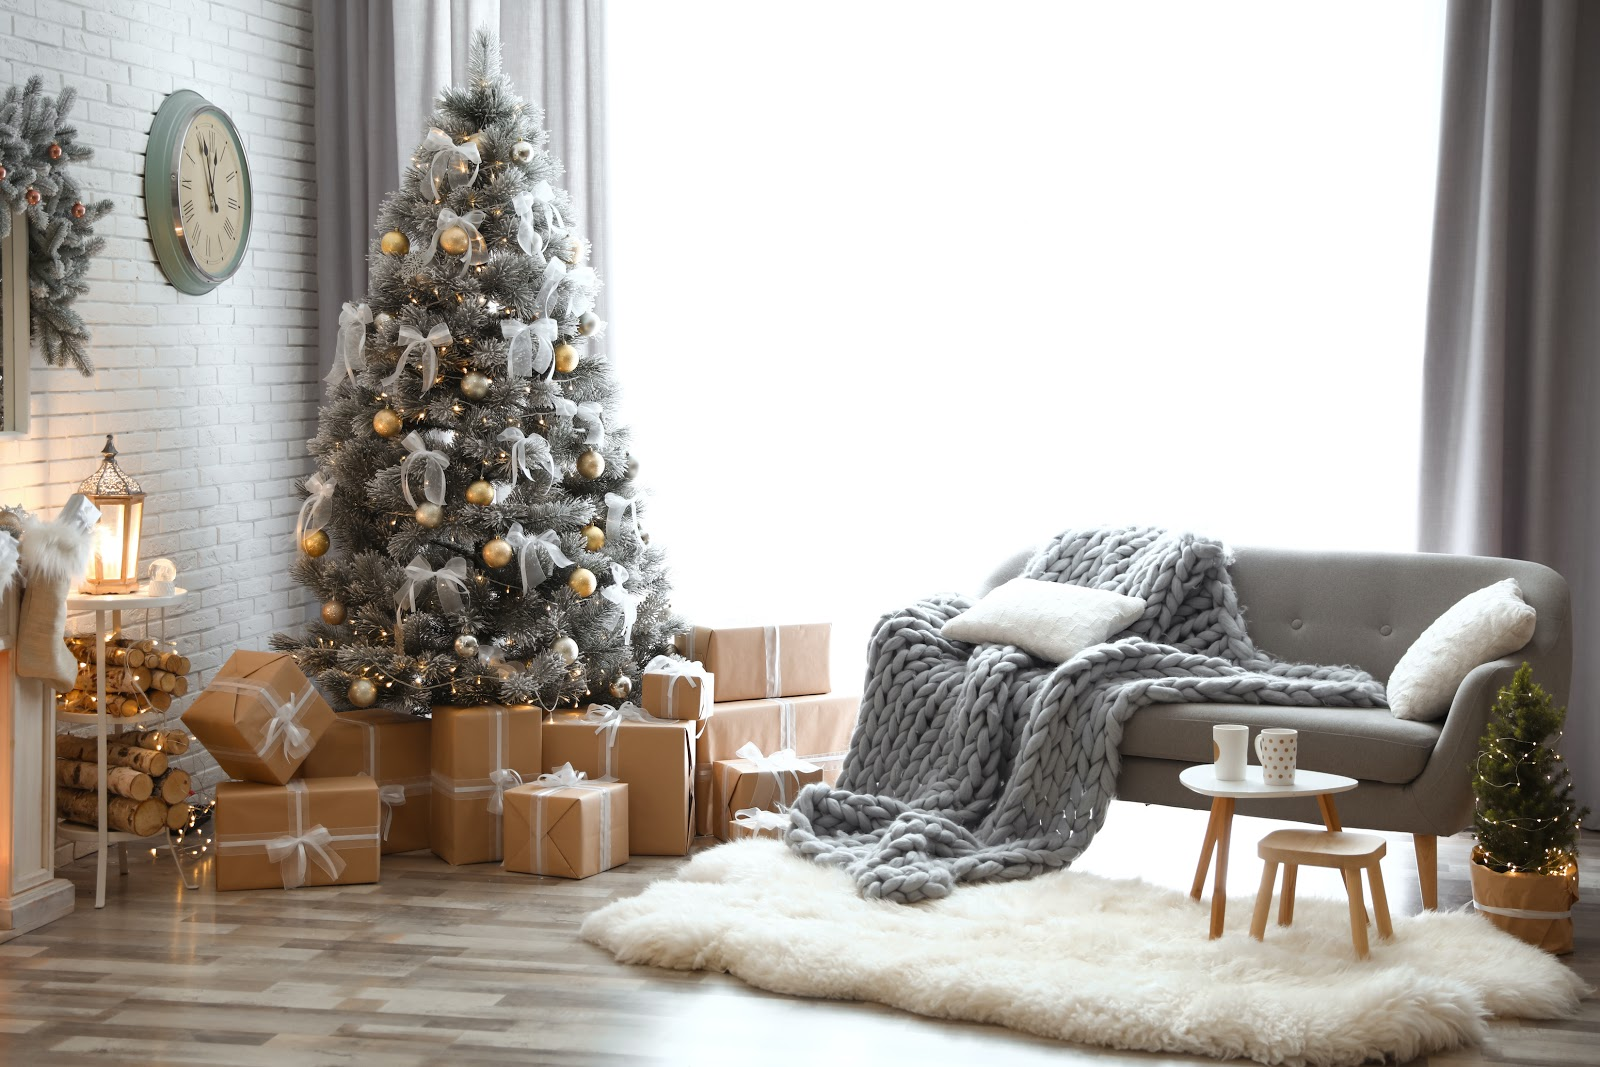 Deck the Halls with These 22 Christmas Decorating Ideas